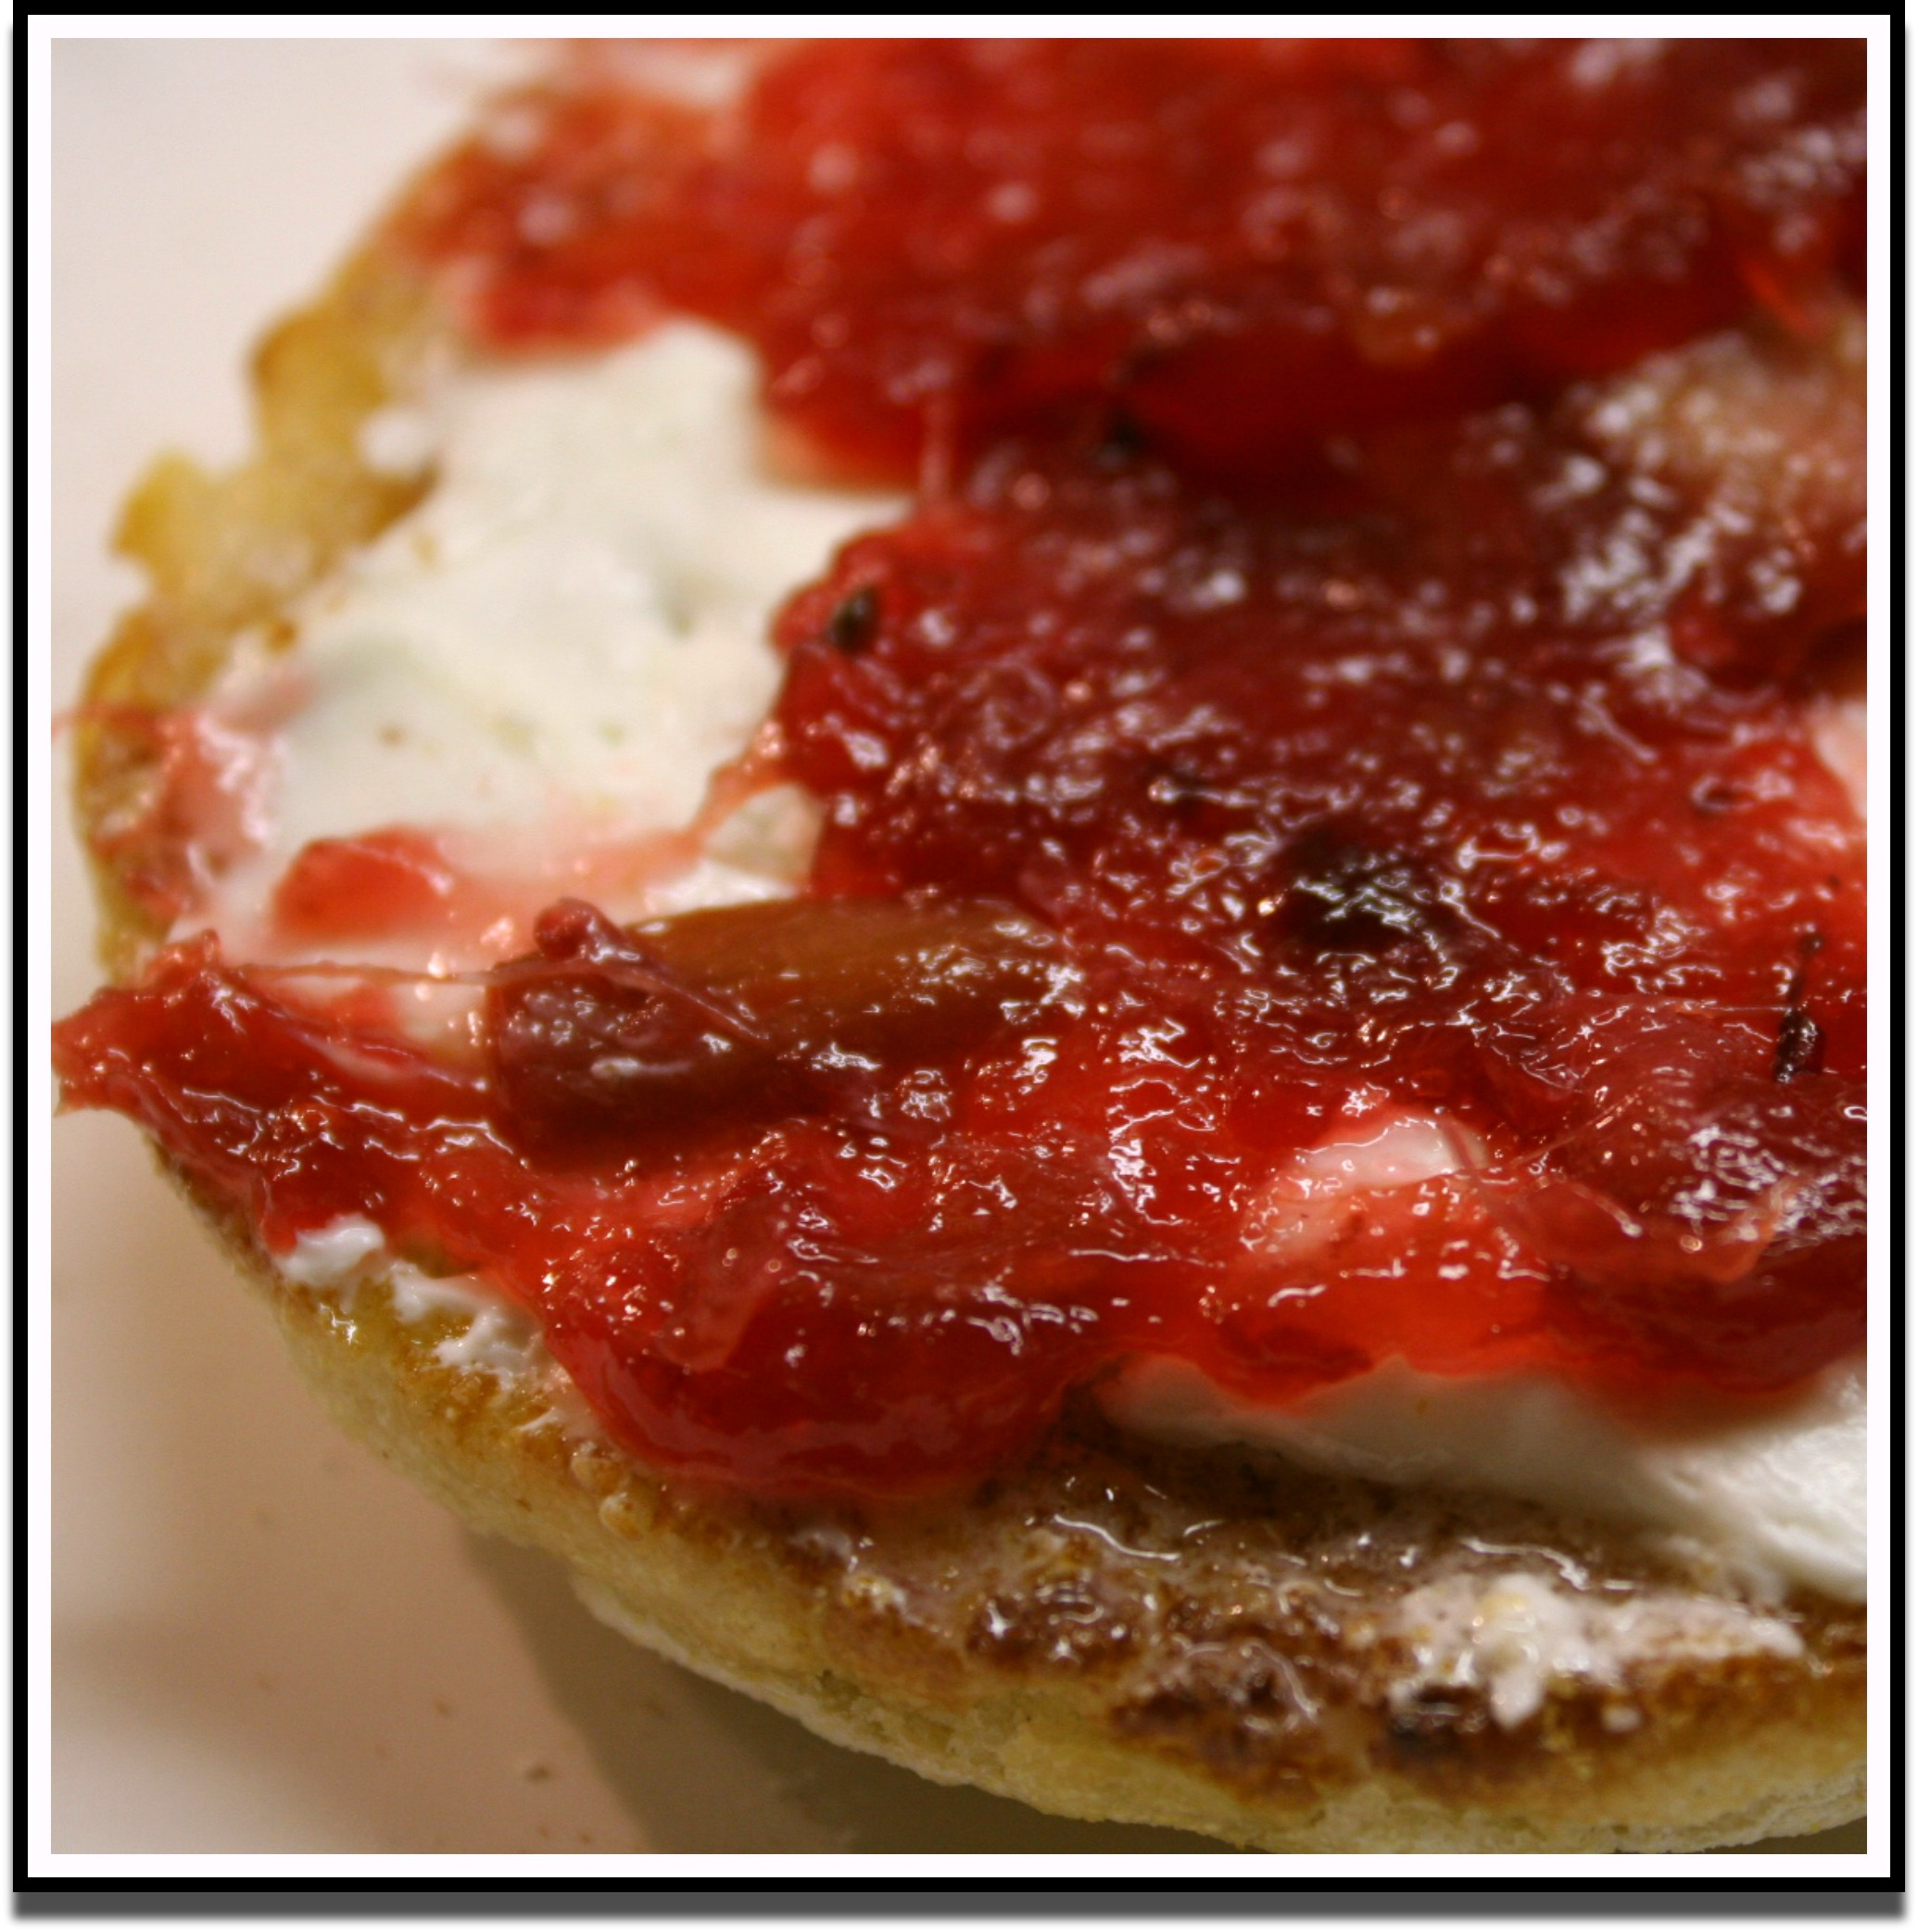 Rhubarb Cran Jam on English Muffin